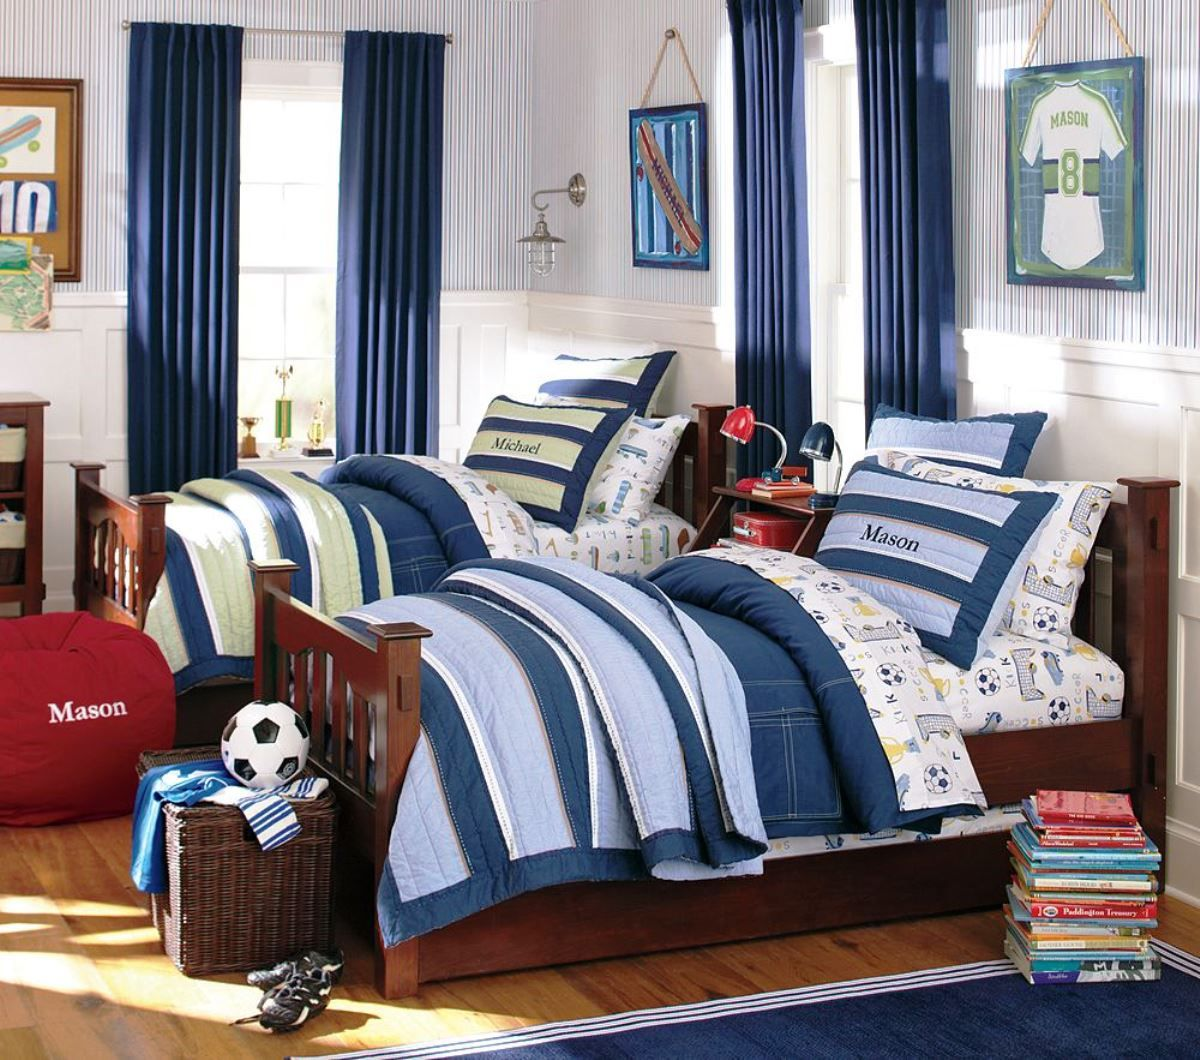 Boys bedroom designs sports - Sport Boy Room Design Ideas